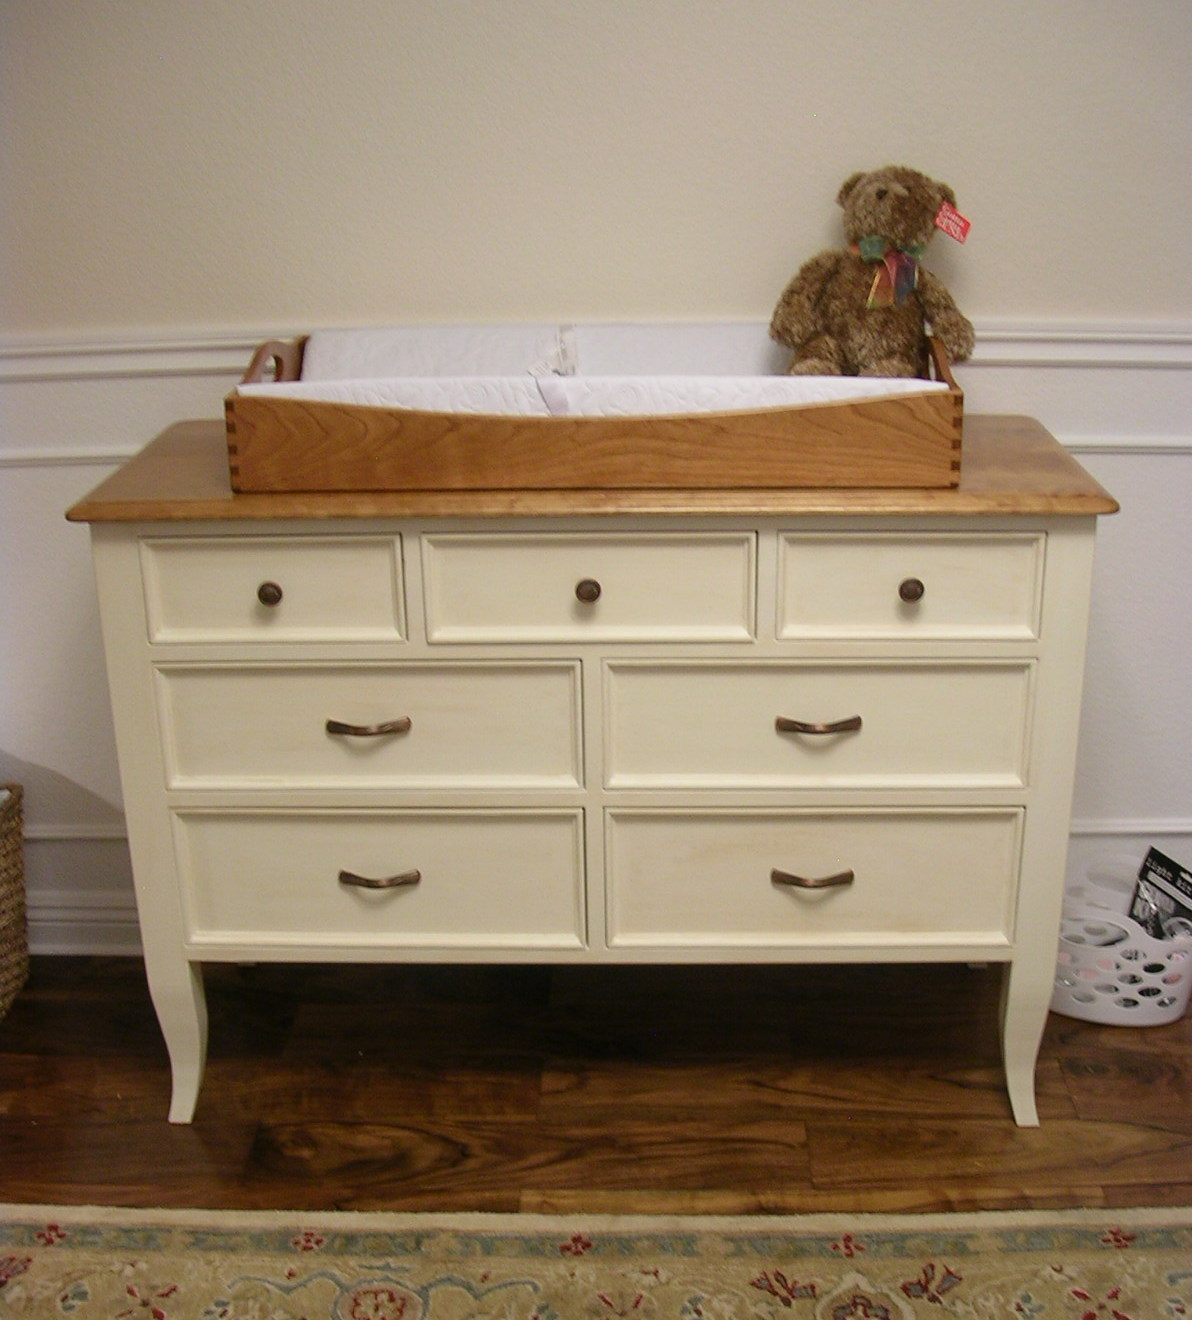 Imagine Out Loud DresserChanging table